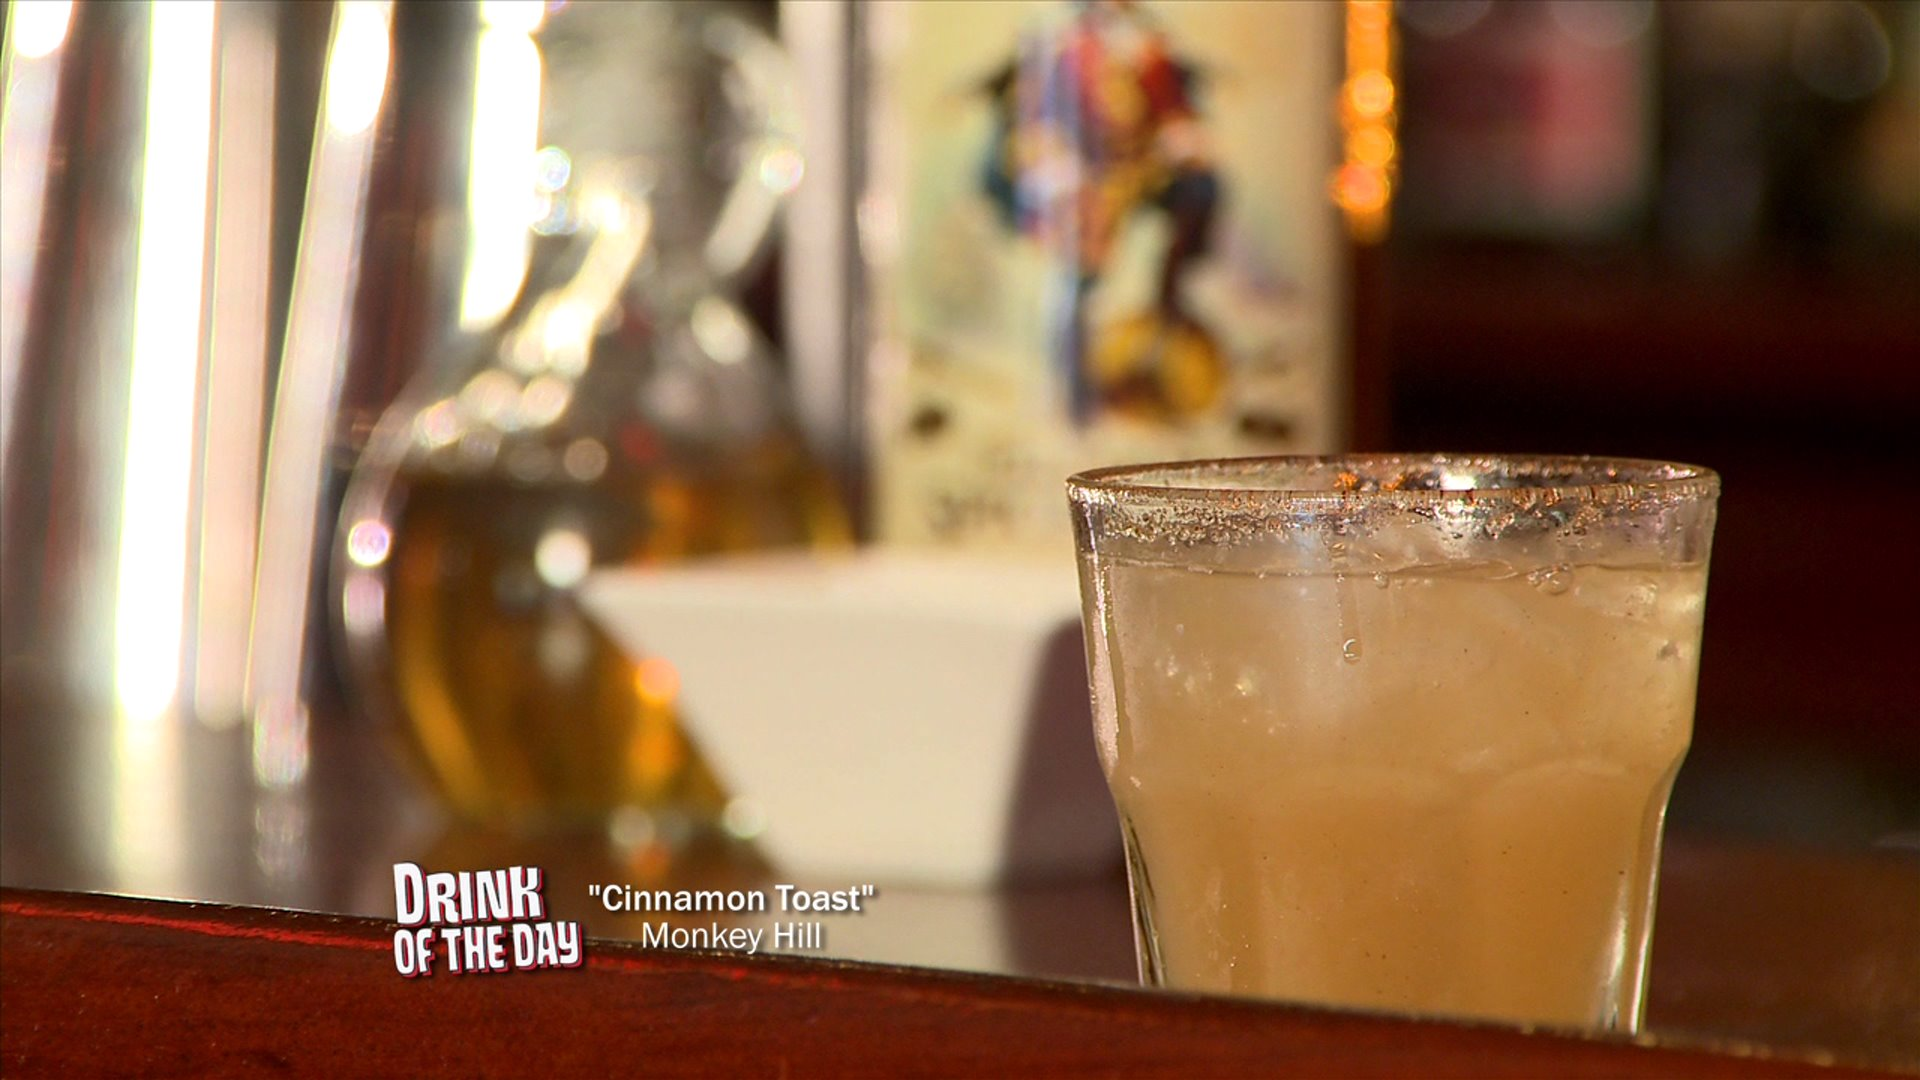 Drink of the Day: Cinnamon Toast